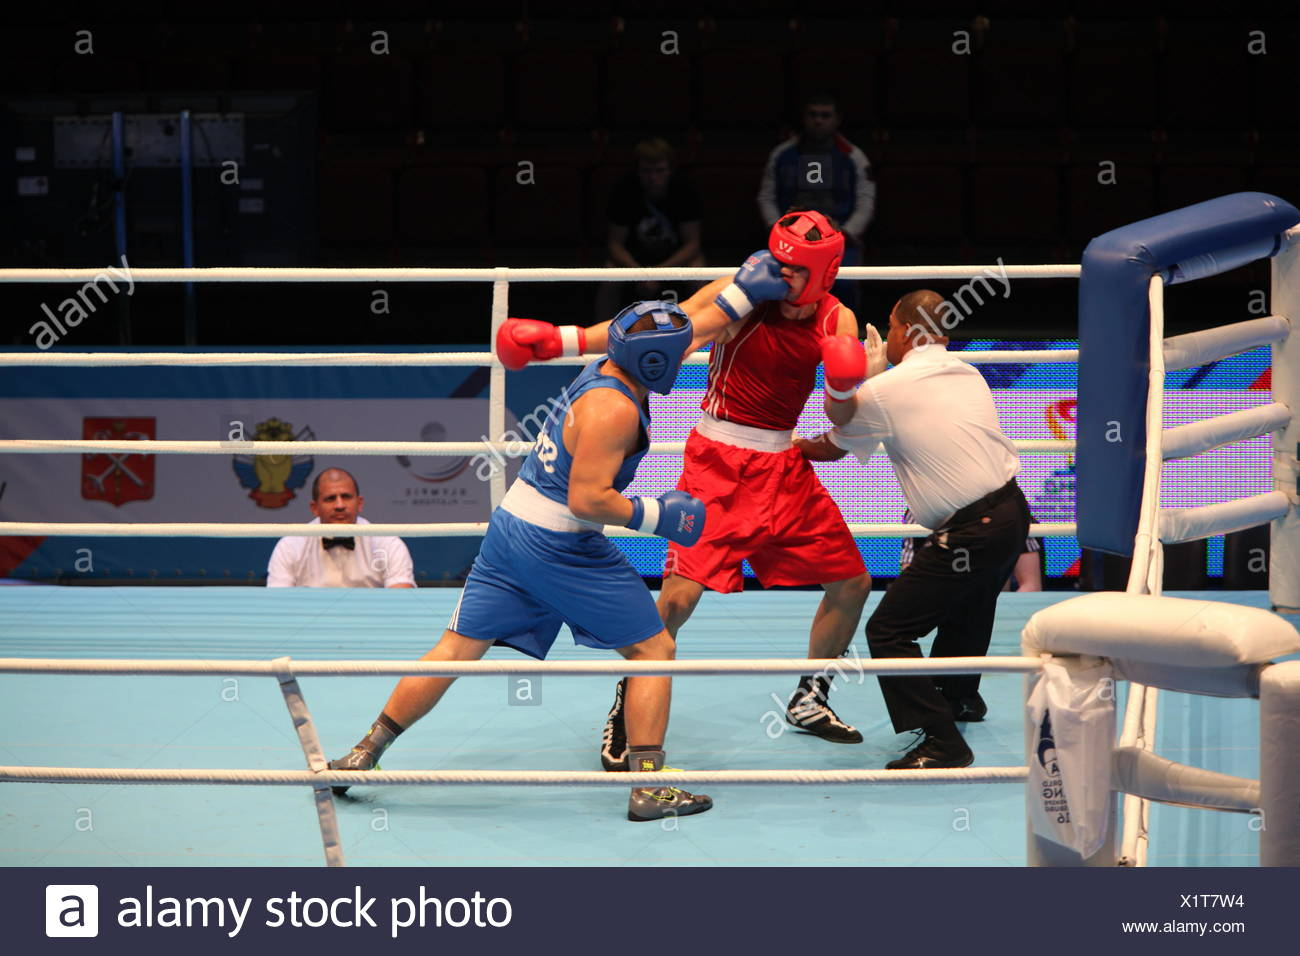 boxing hit jab and knockout - Stock Image